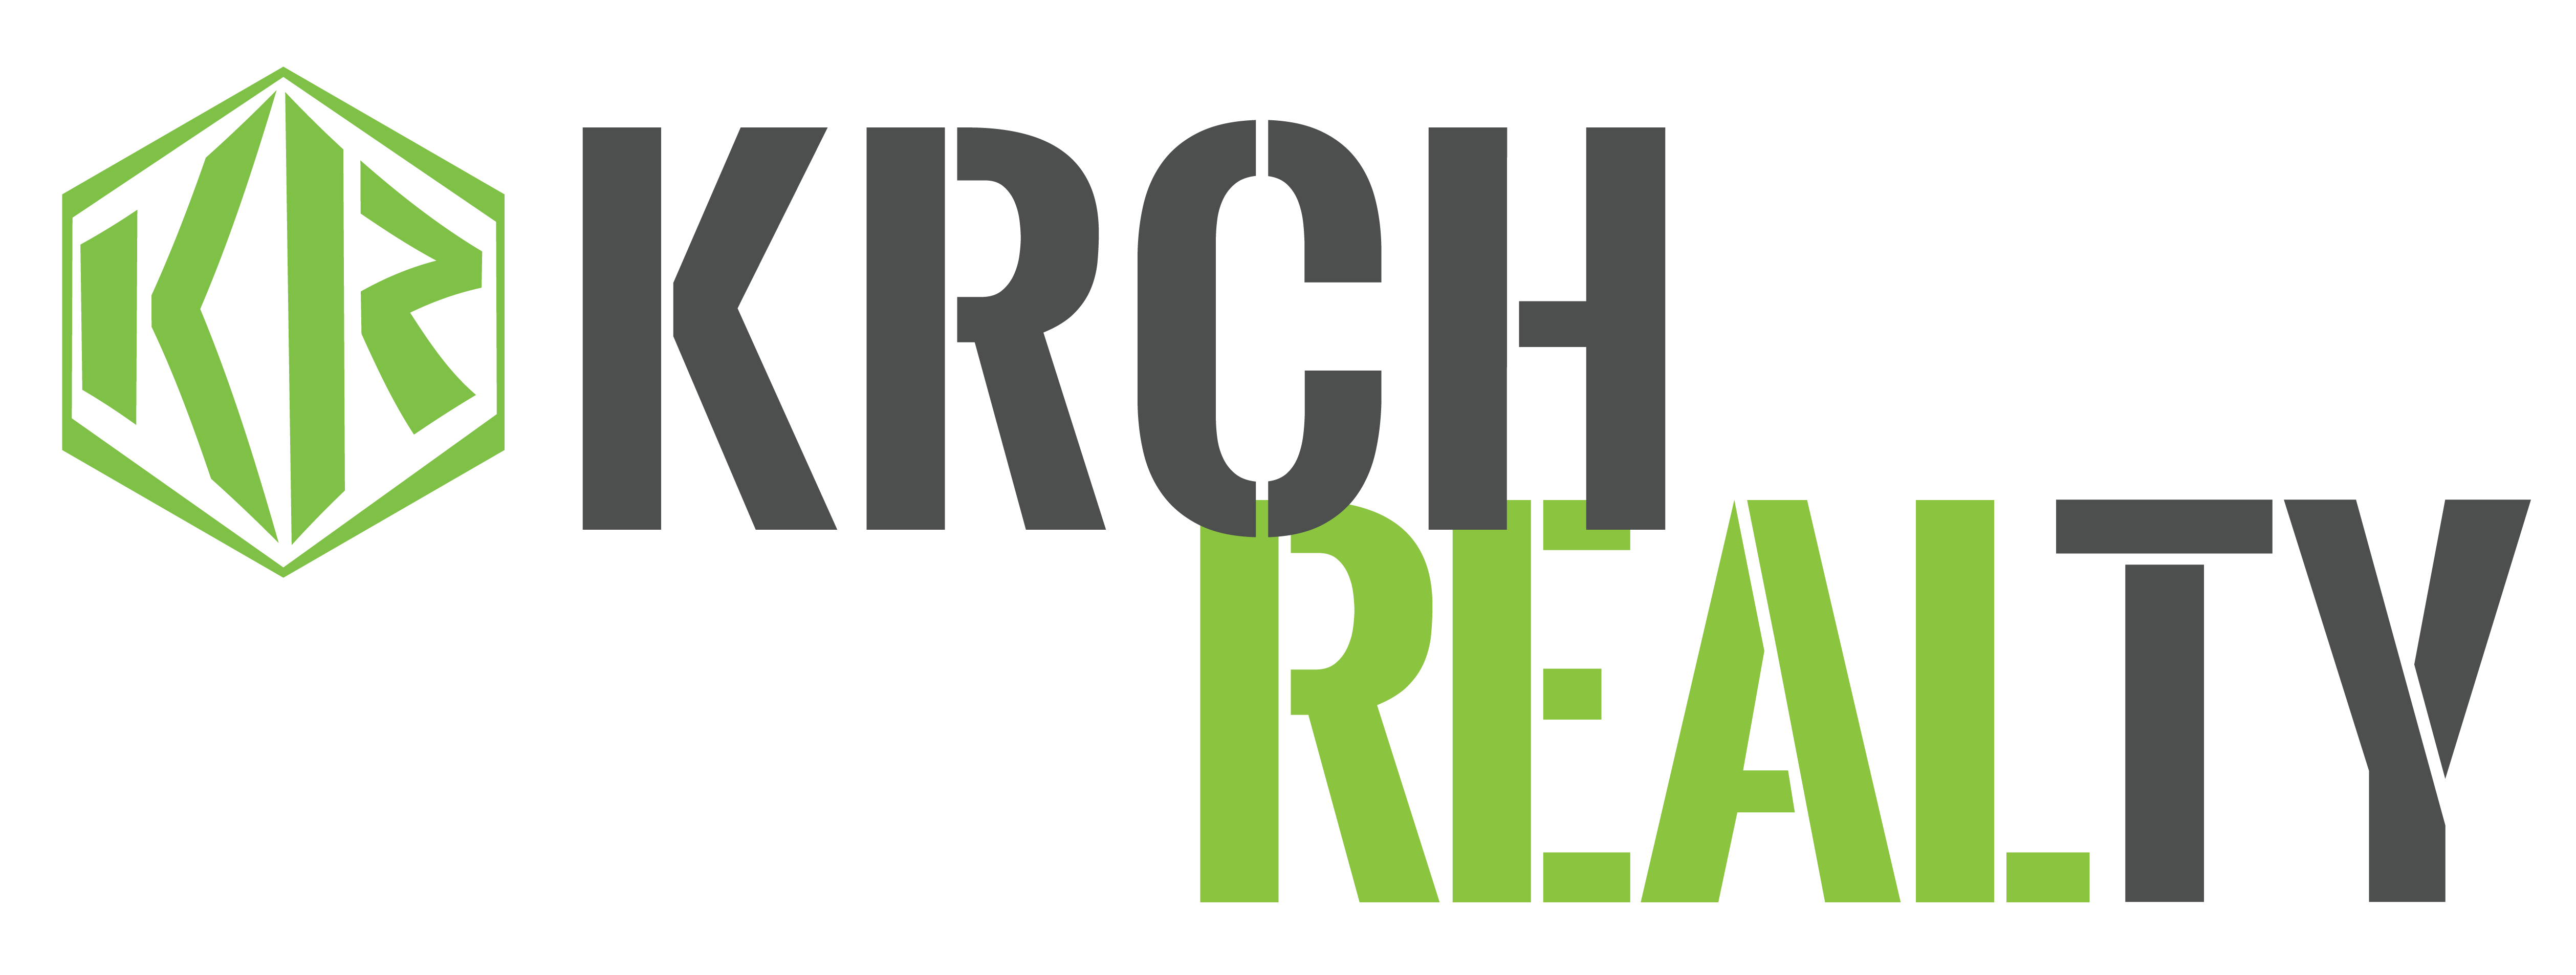 Krch Realty, Hughes Private Capital, and Move Home Nevada Raise $2,475 for Local Charities